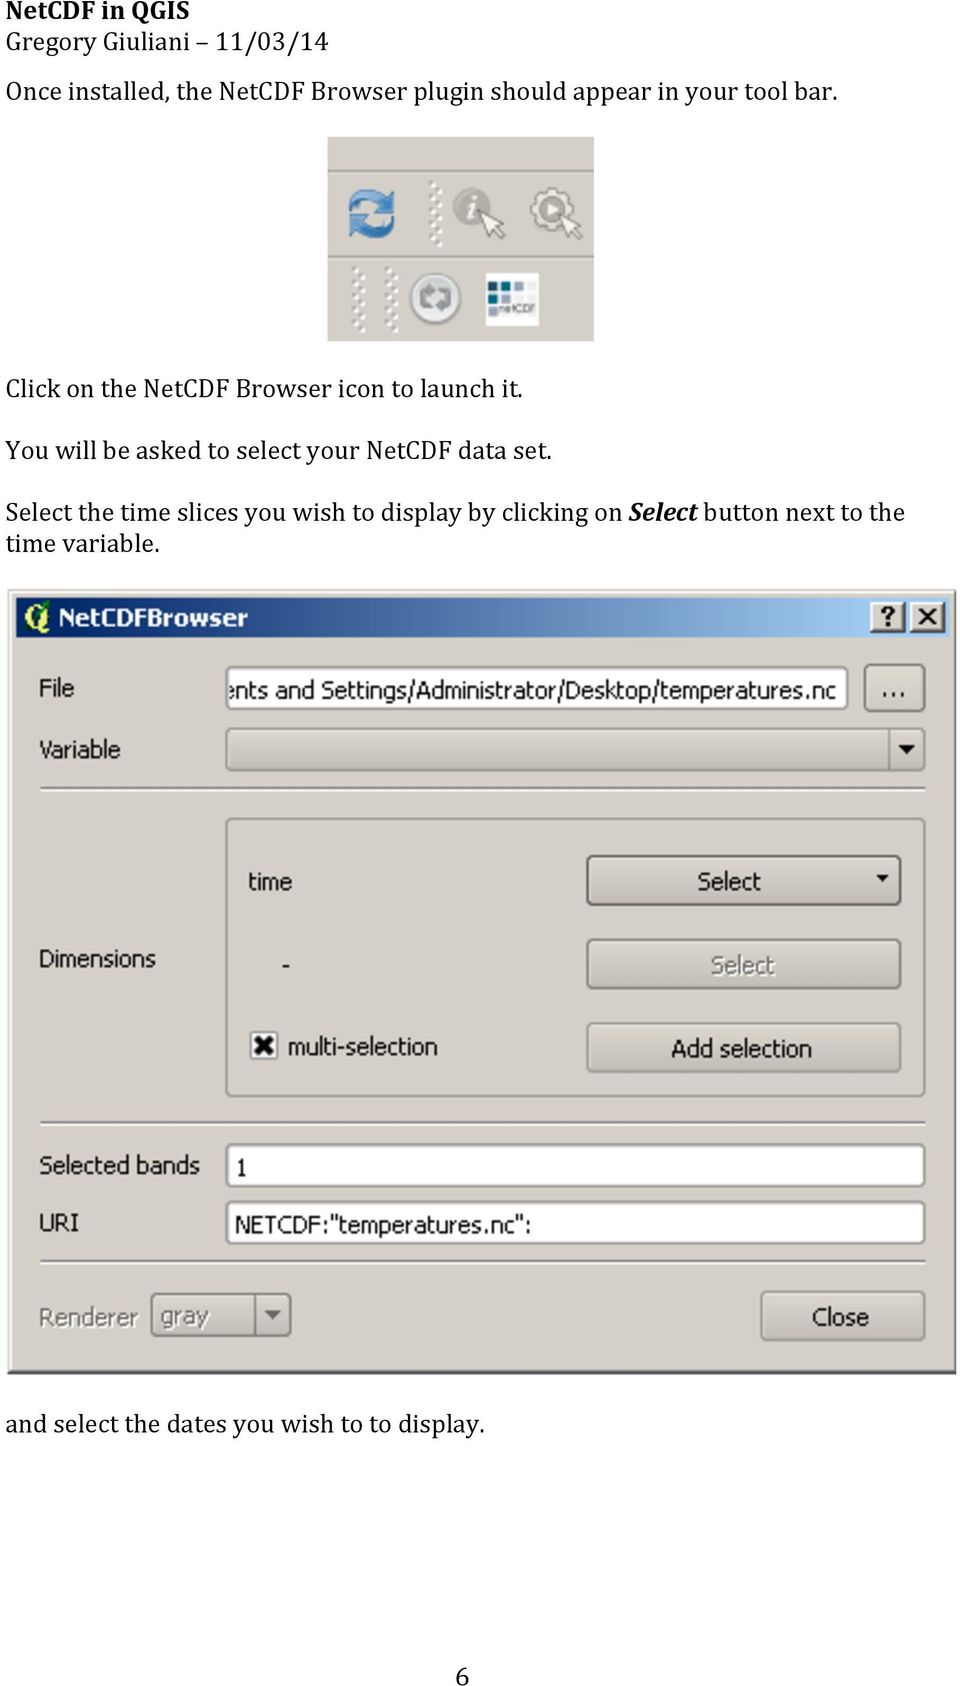 You will be asked to select your NetCDF data set.